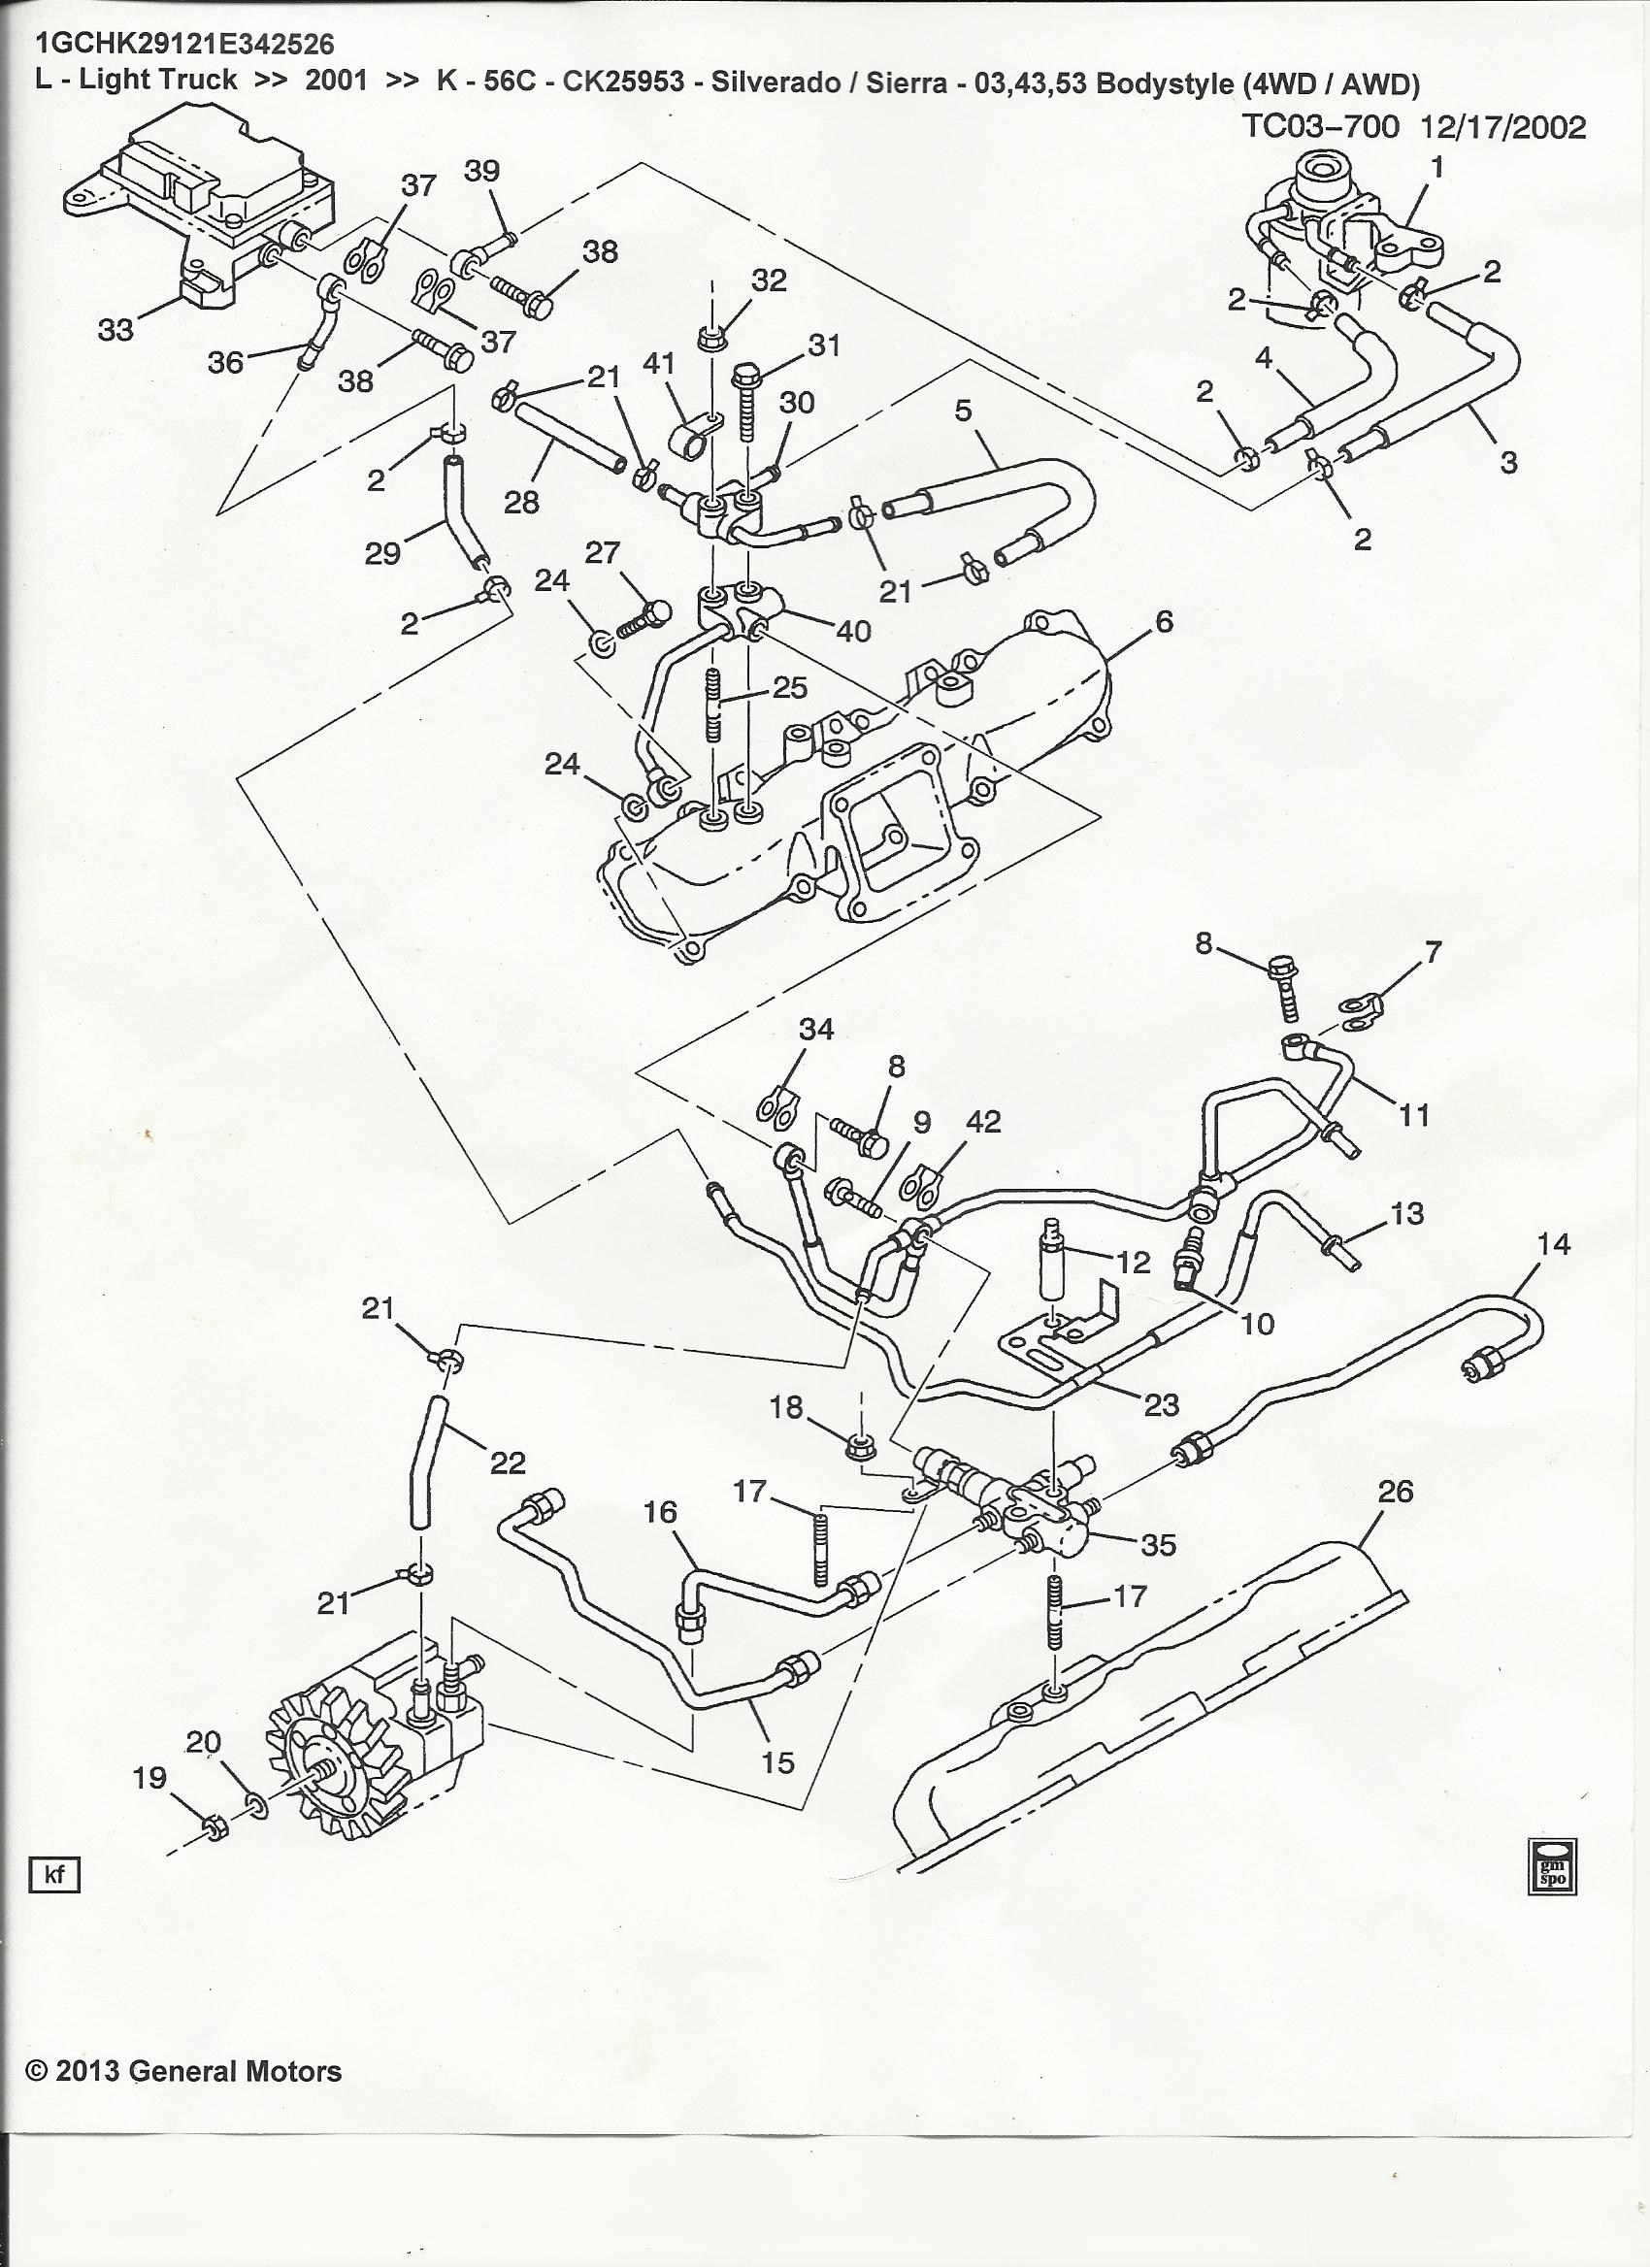 hight resolution of 2003 silverado fuel line diagram wiring diagram used 2003 chevy silverado fuel pump diagram 2003 silverado fuel diagram